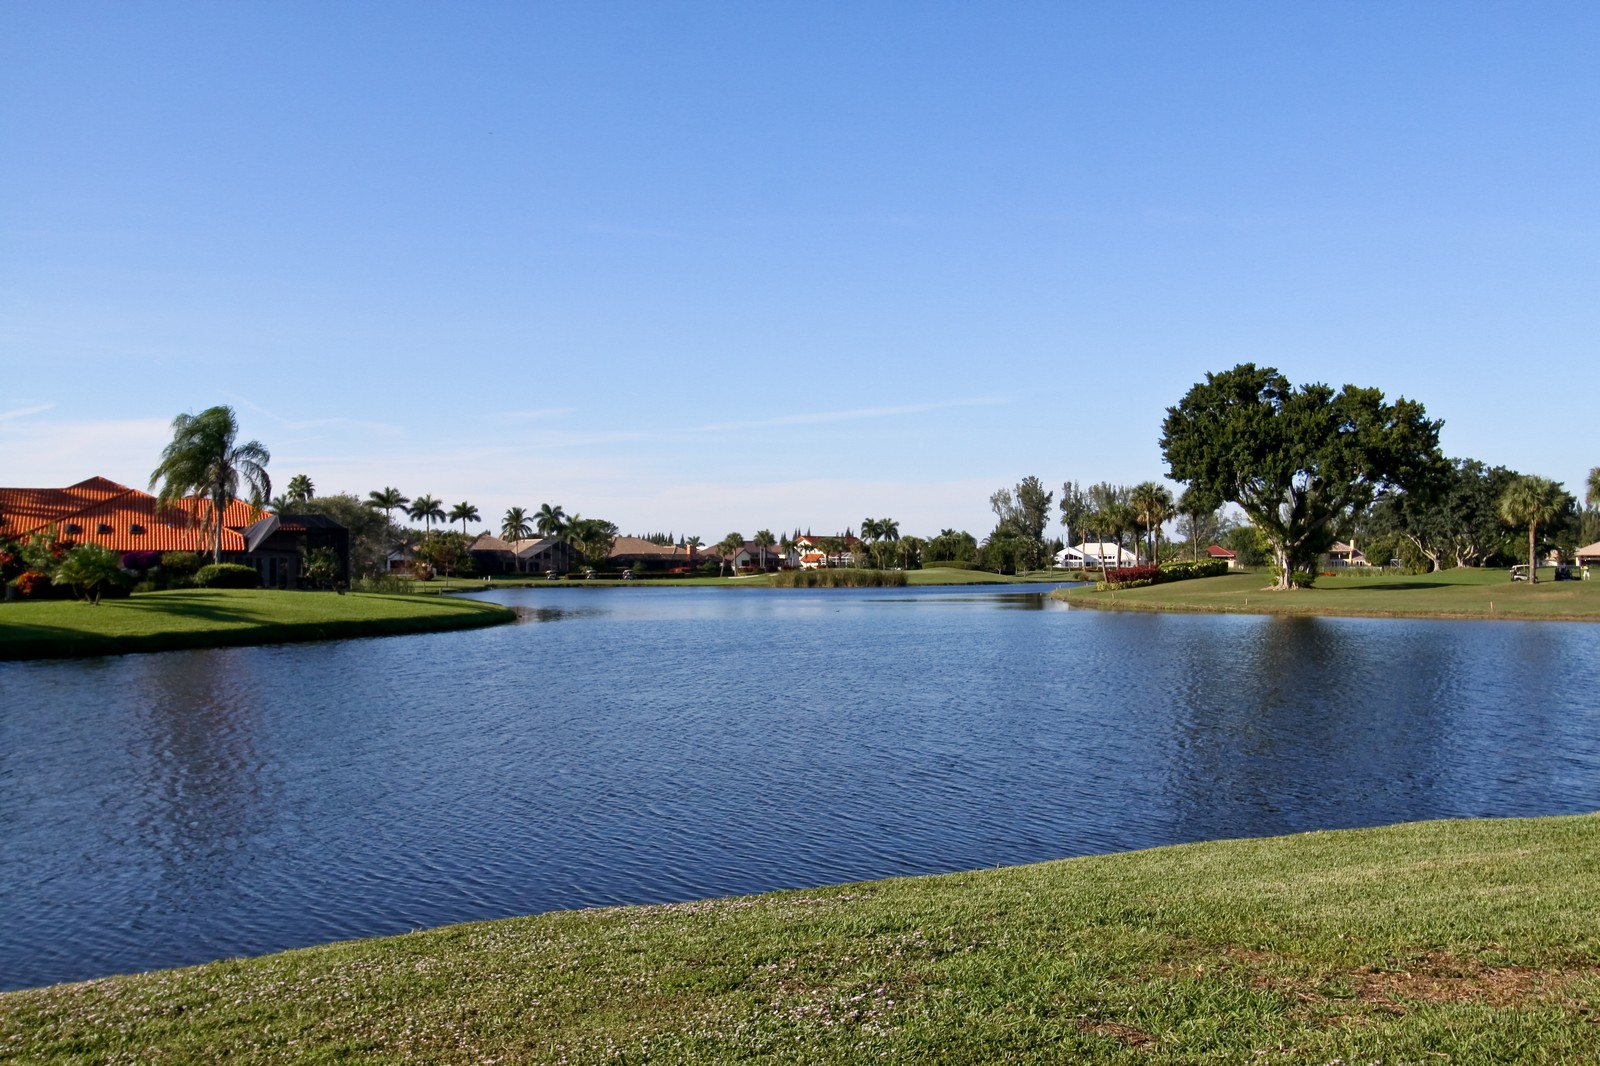 Real Estate Photography - 17799 Heather Ridge, Boca Raton, FL, 33498 - Lake View